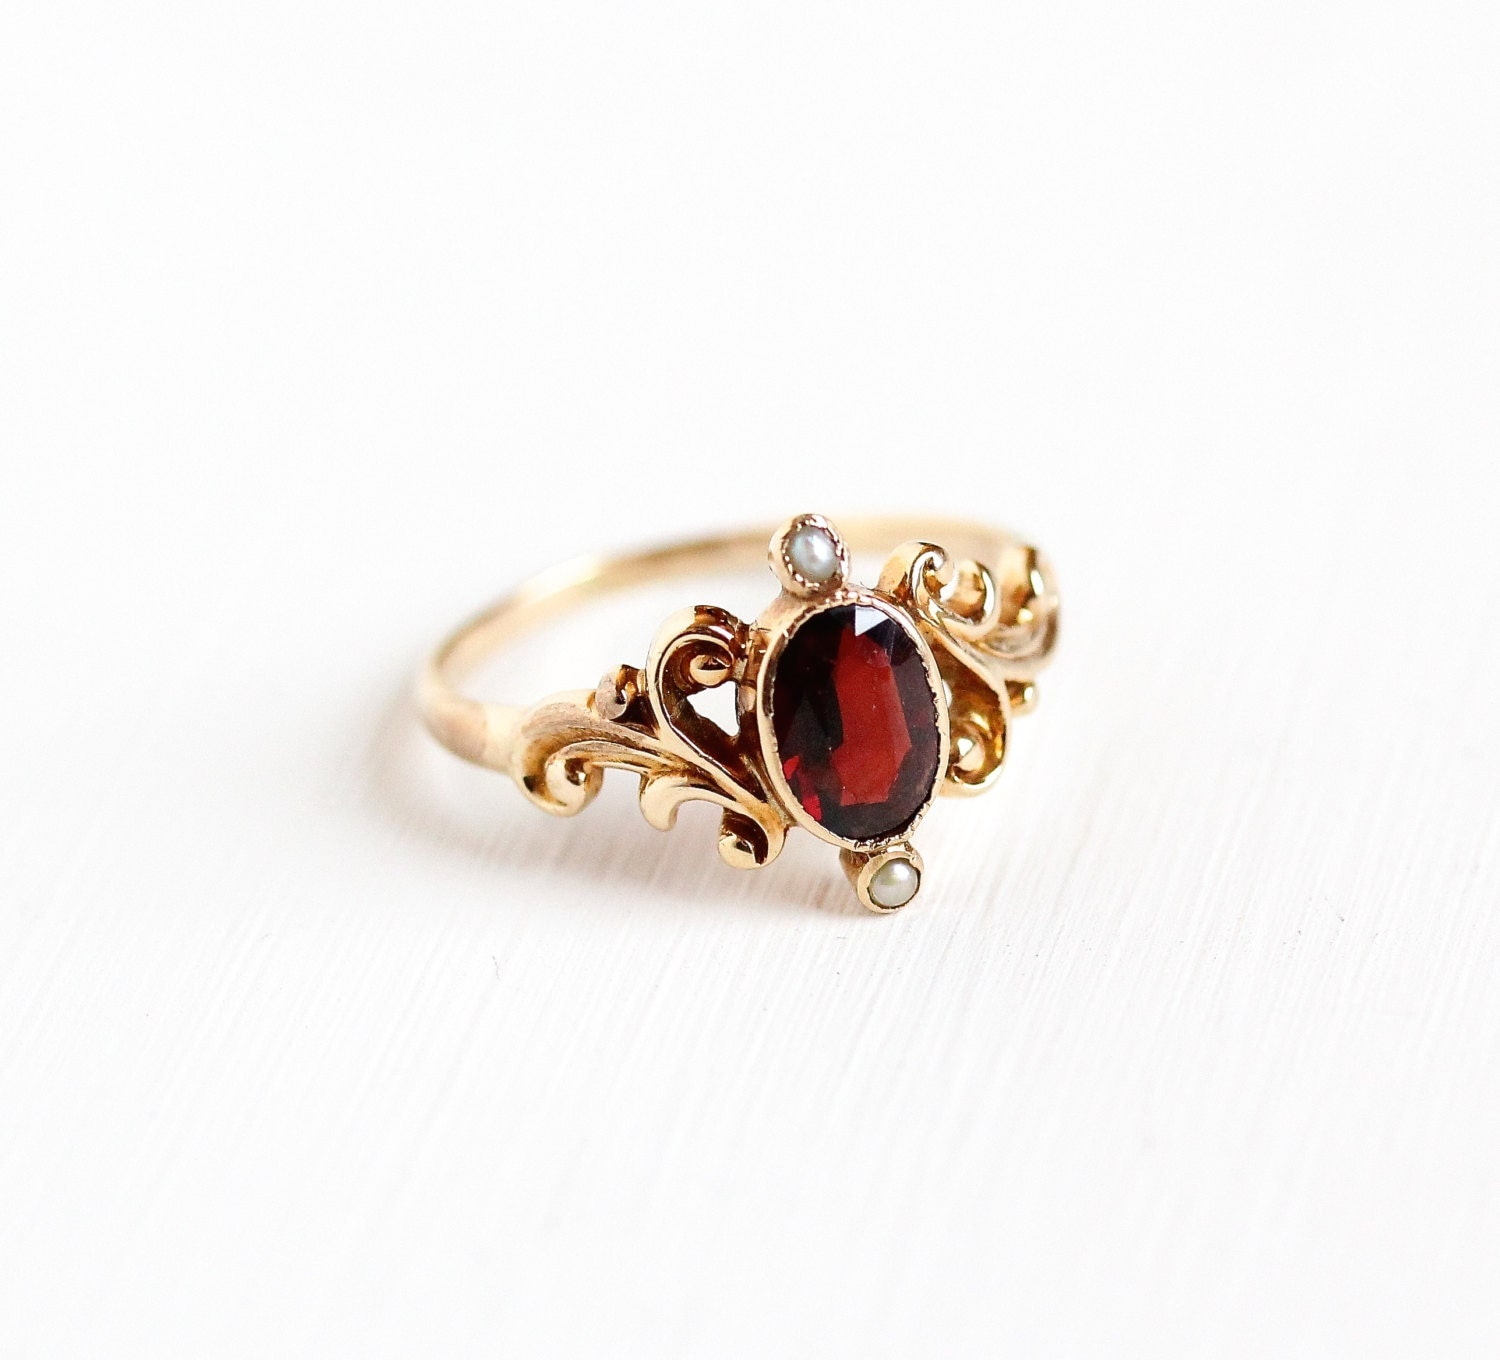 Antique Victorian 10k Rose Gold Garnet Seed Pearl Ring Size